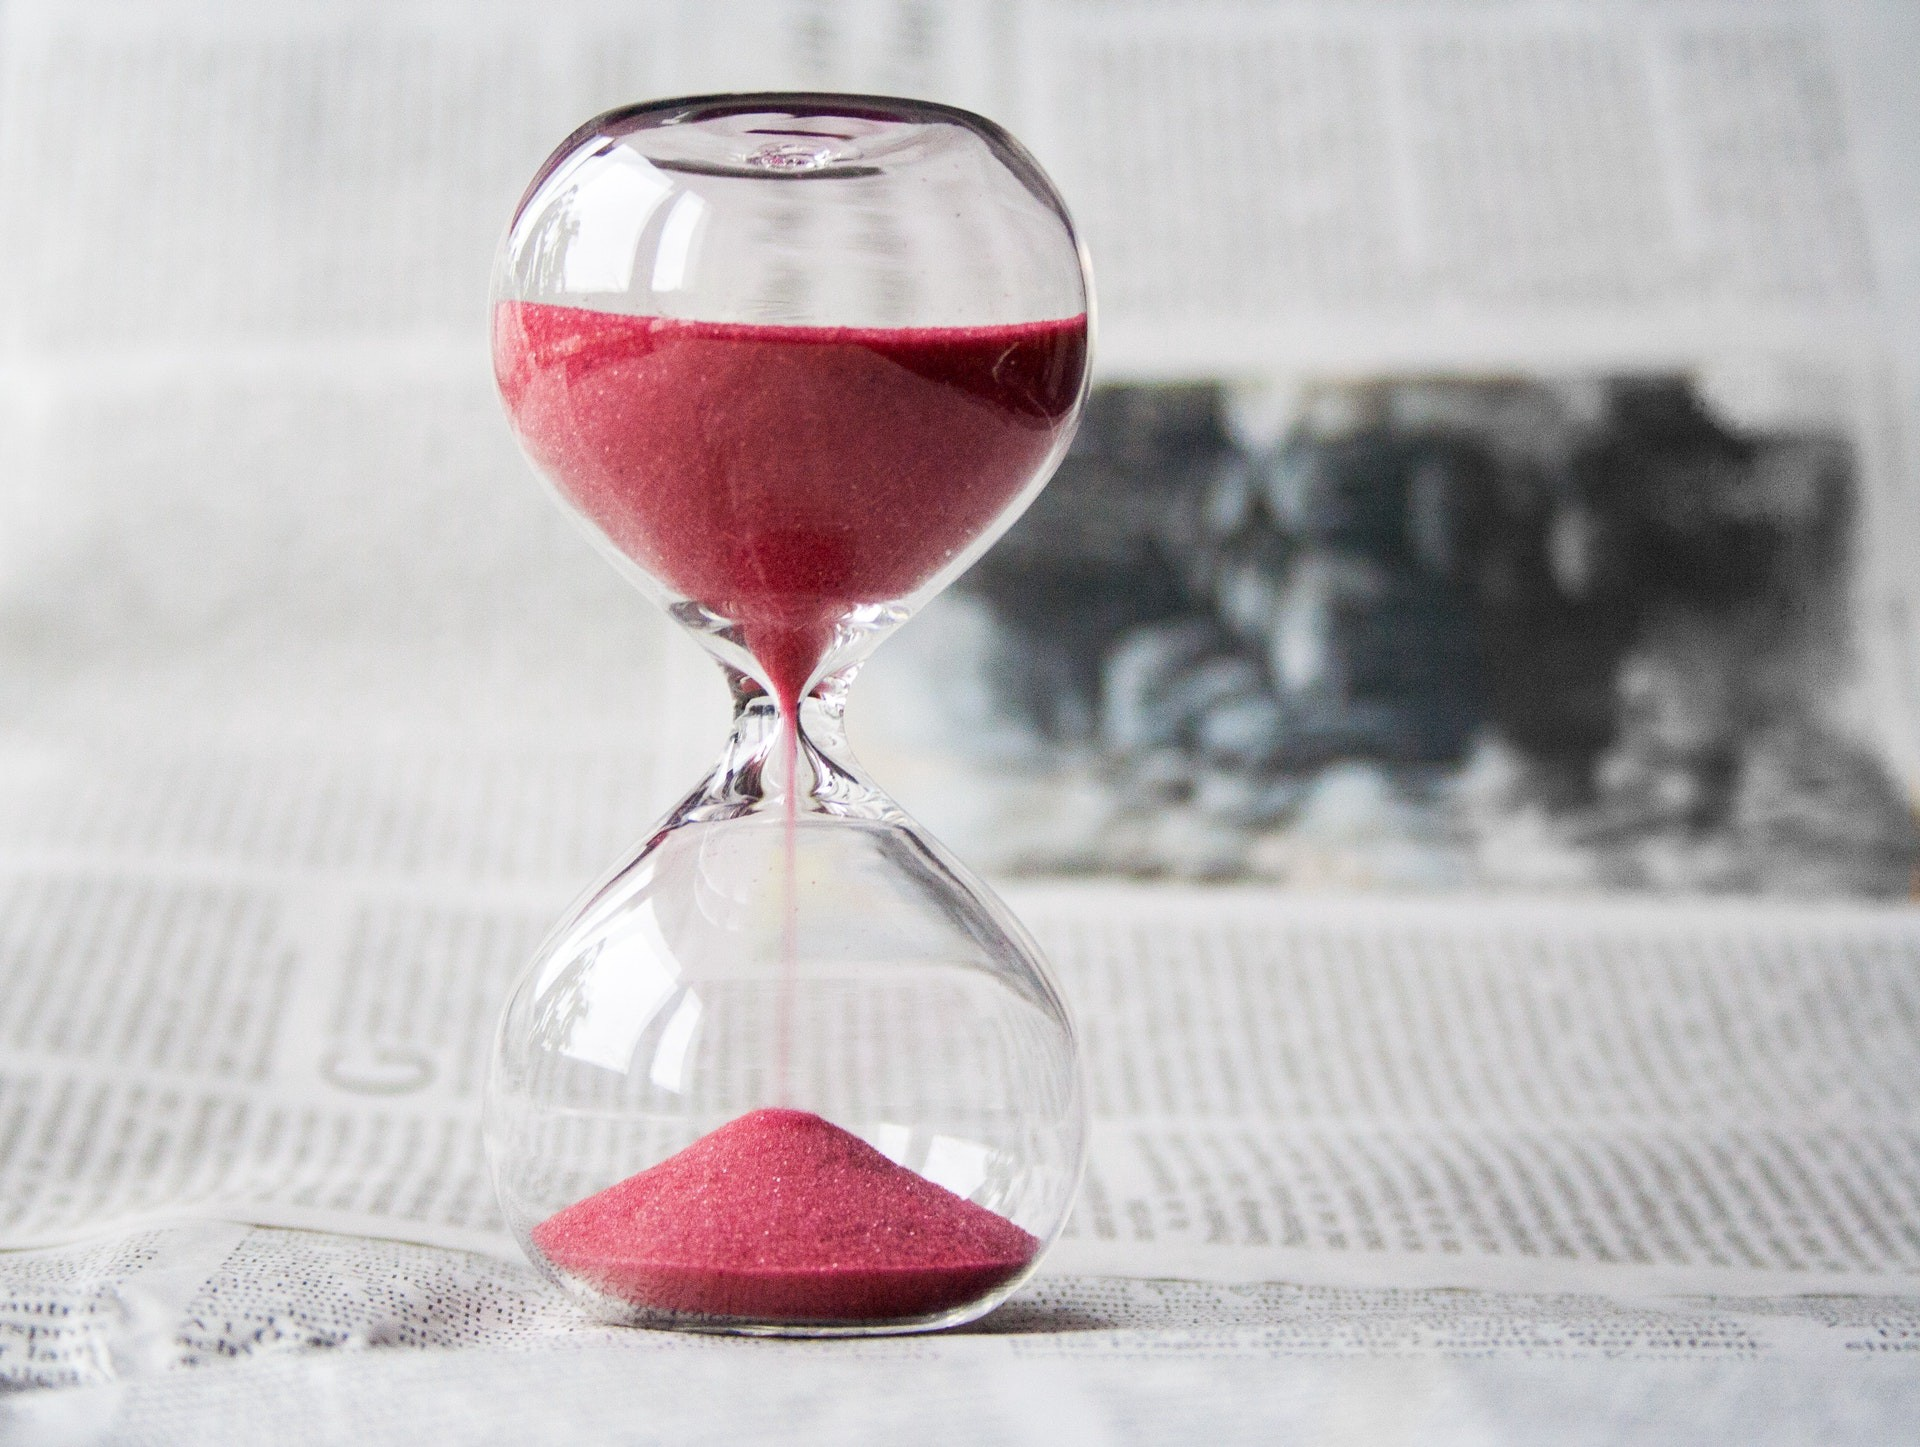 A clear hourglass with red sand.